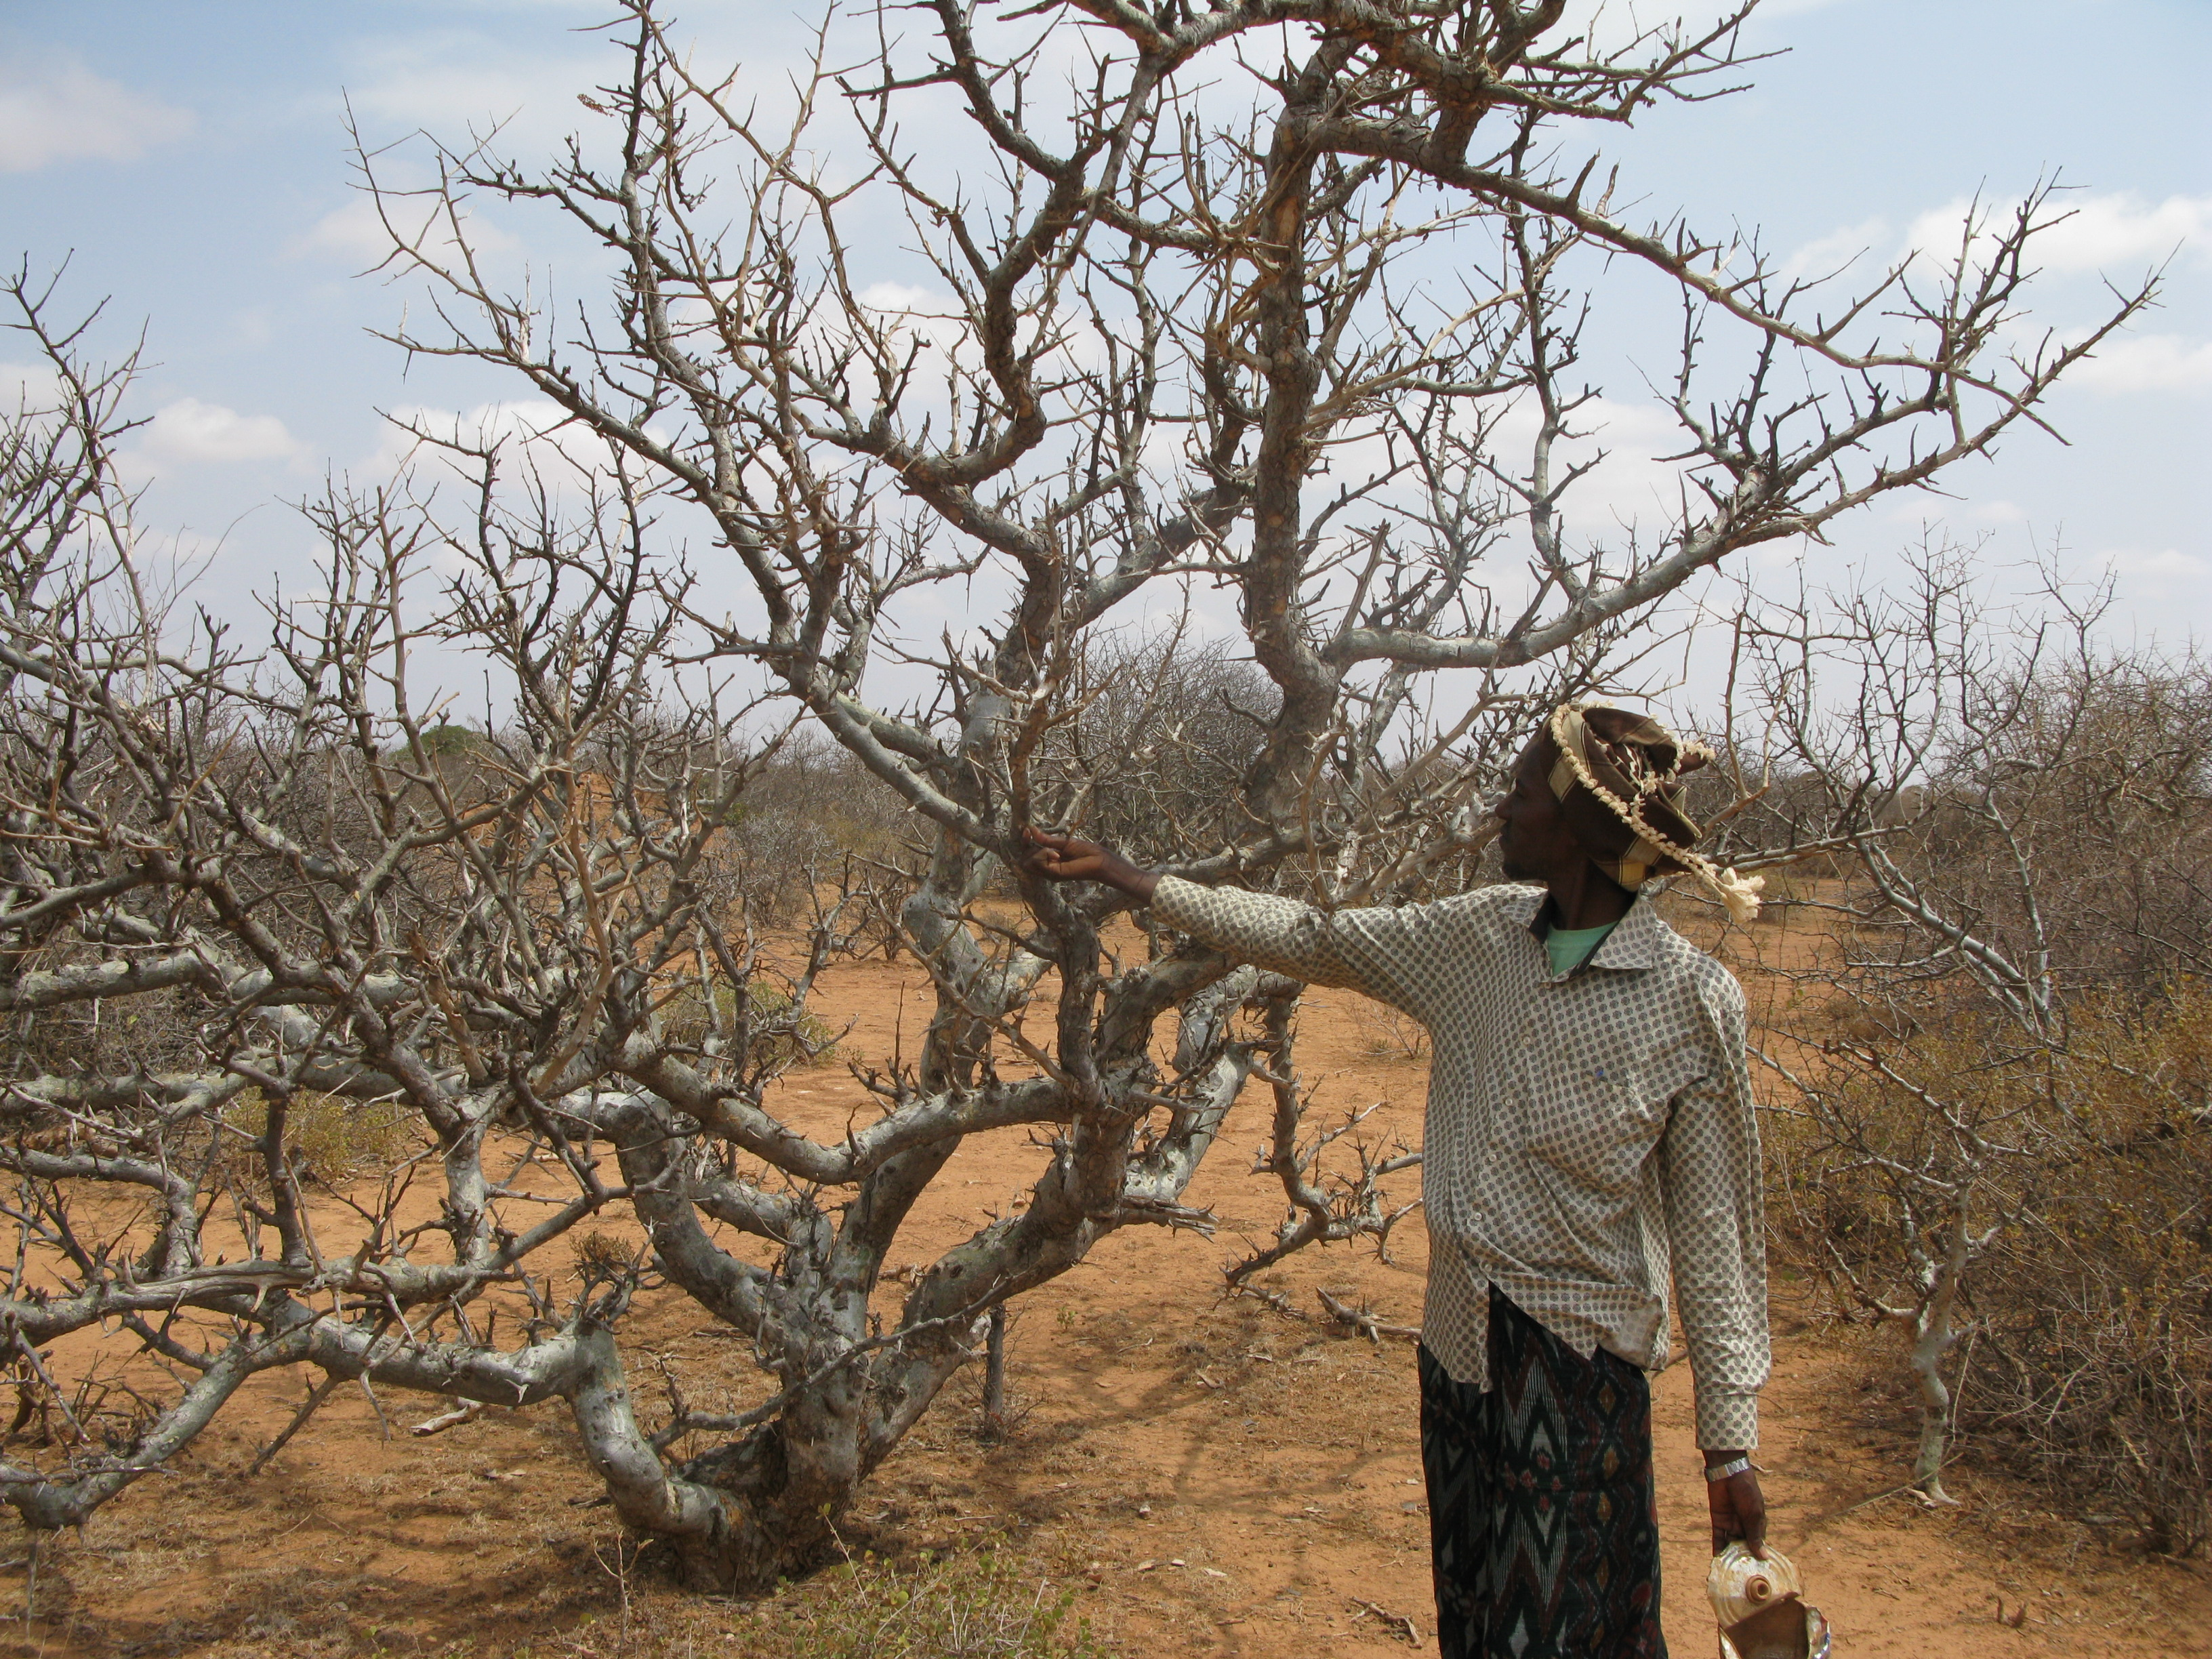 Co Ops Do We Support Ethical Frankincense Harvesting